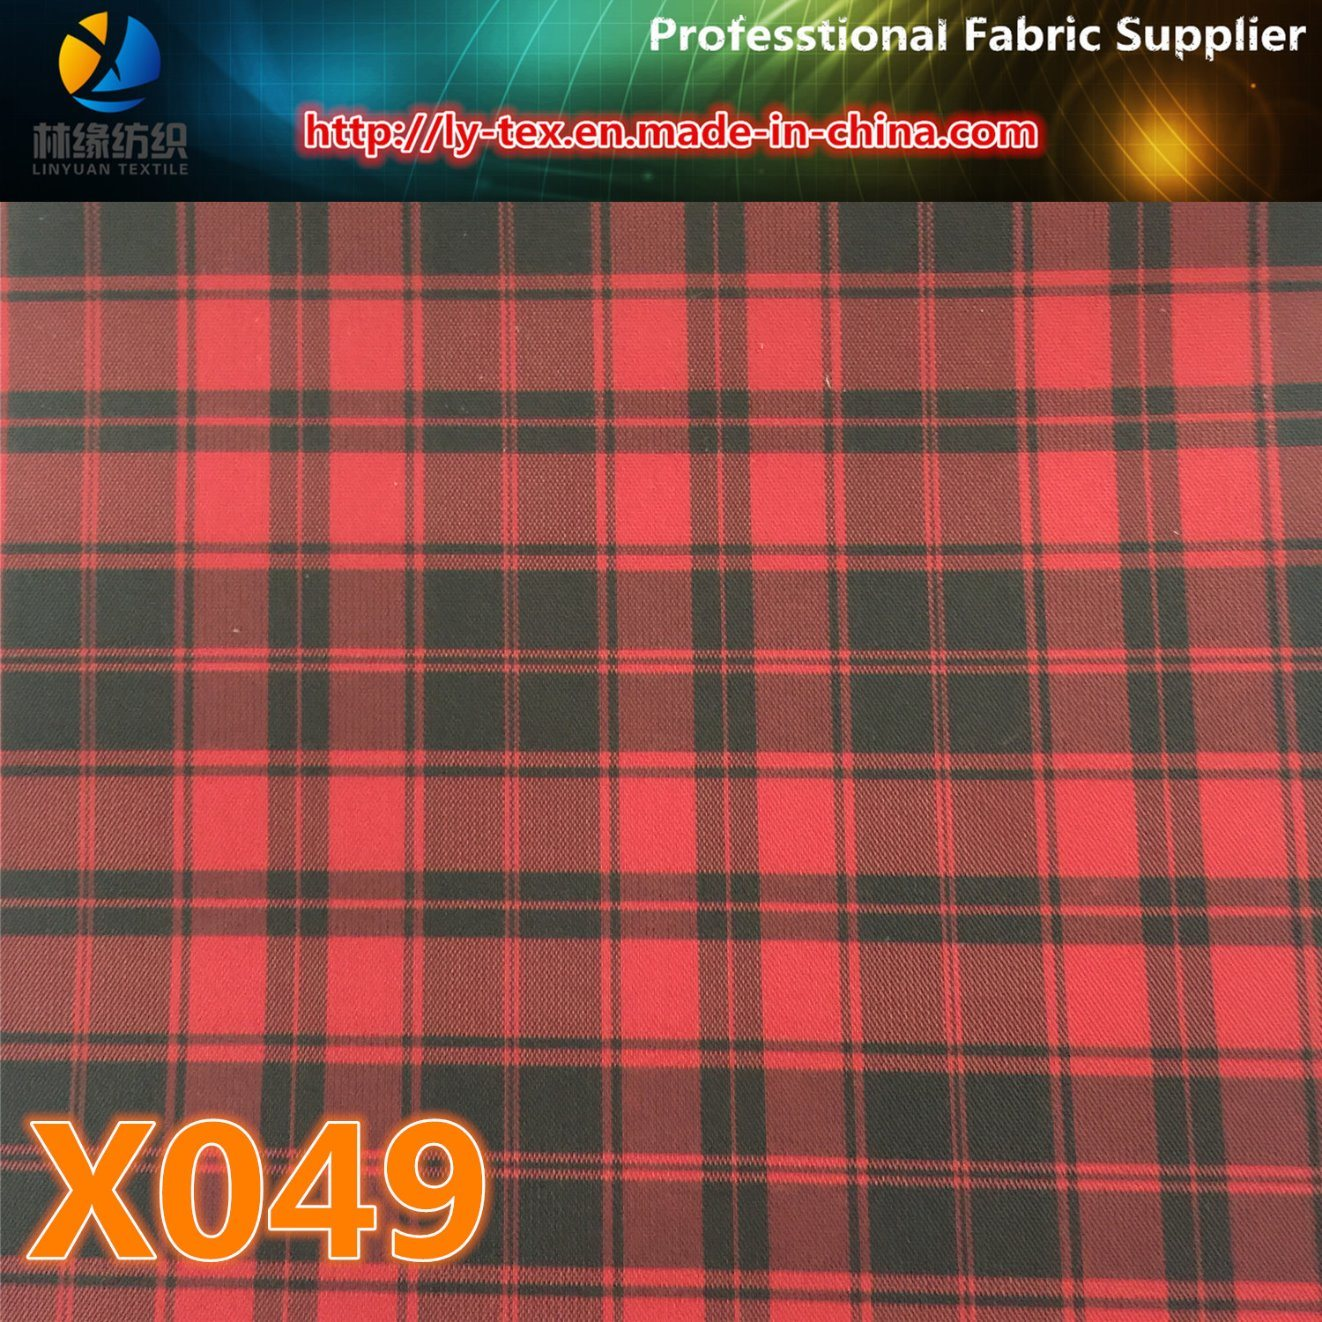 Prompt Goods. Polyeter Lining Check Fabric (X048-50) pictures & photos